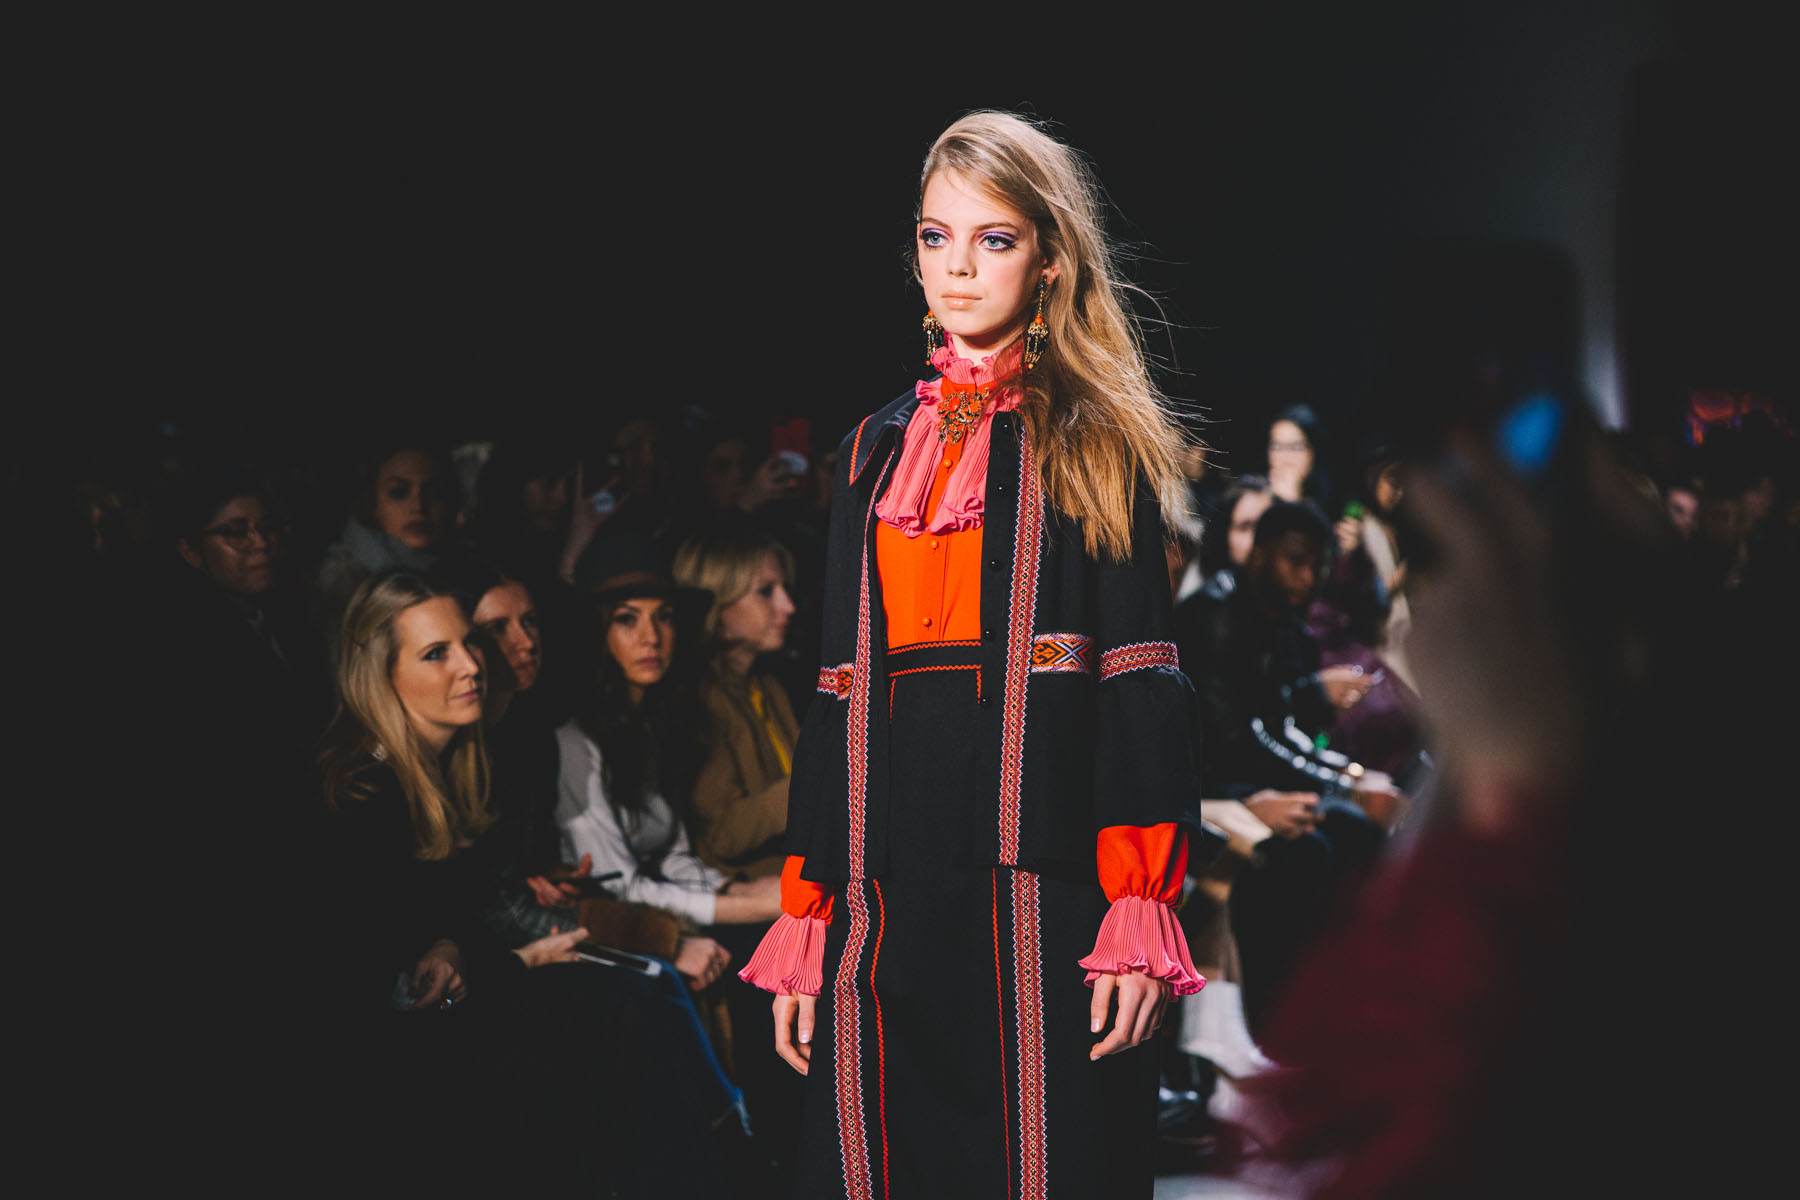 NYFW DAY 5 - Anna Sui Fall 2018 Collection // Notjessfashion.com